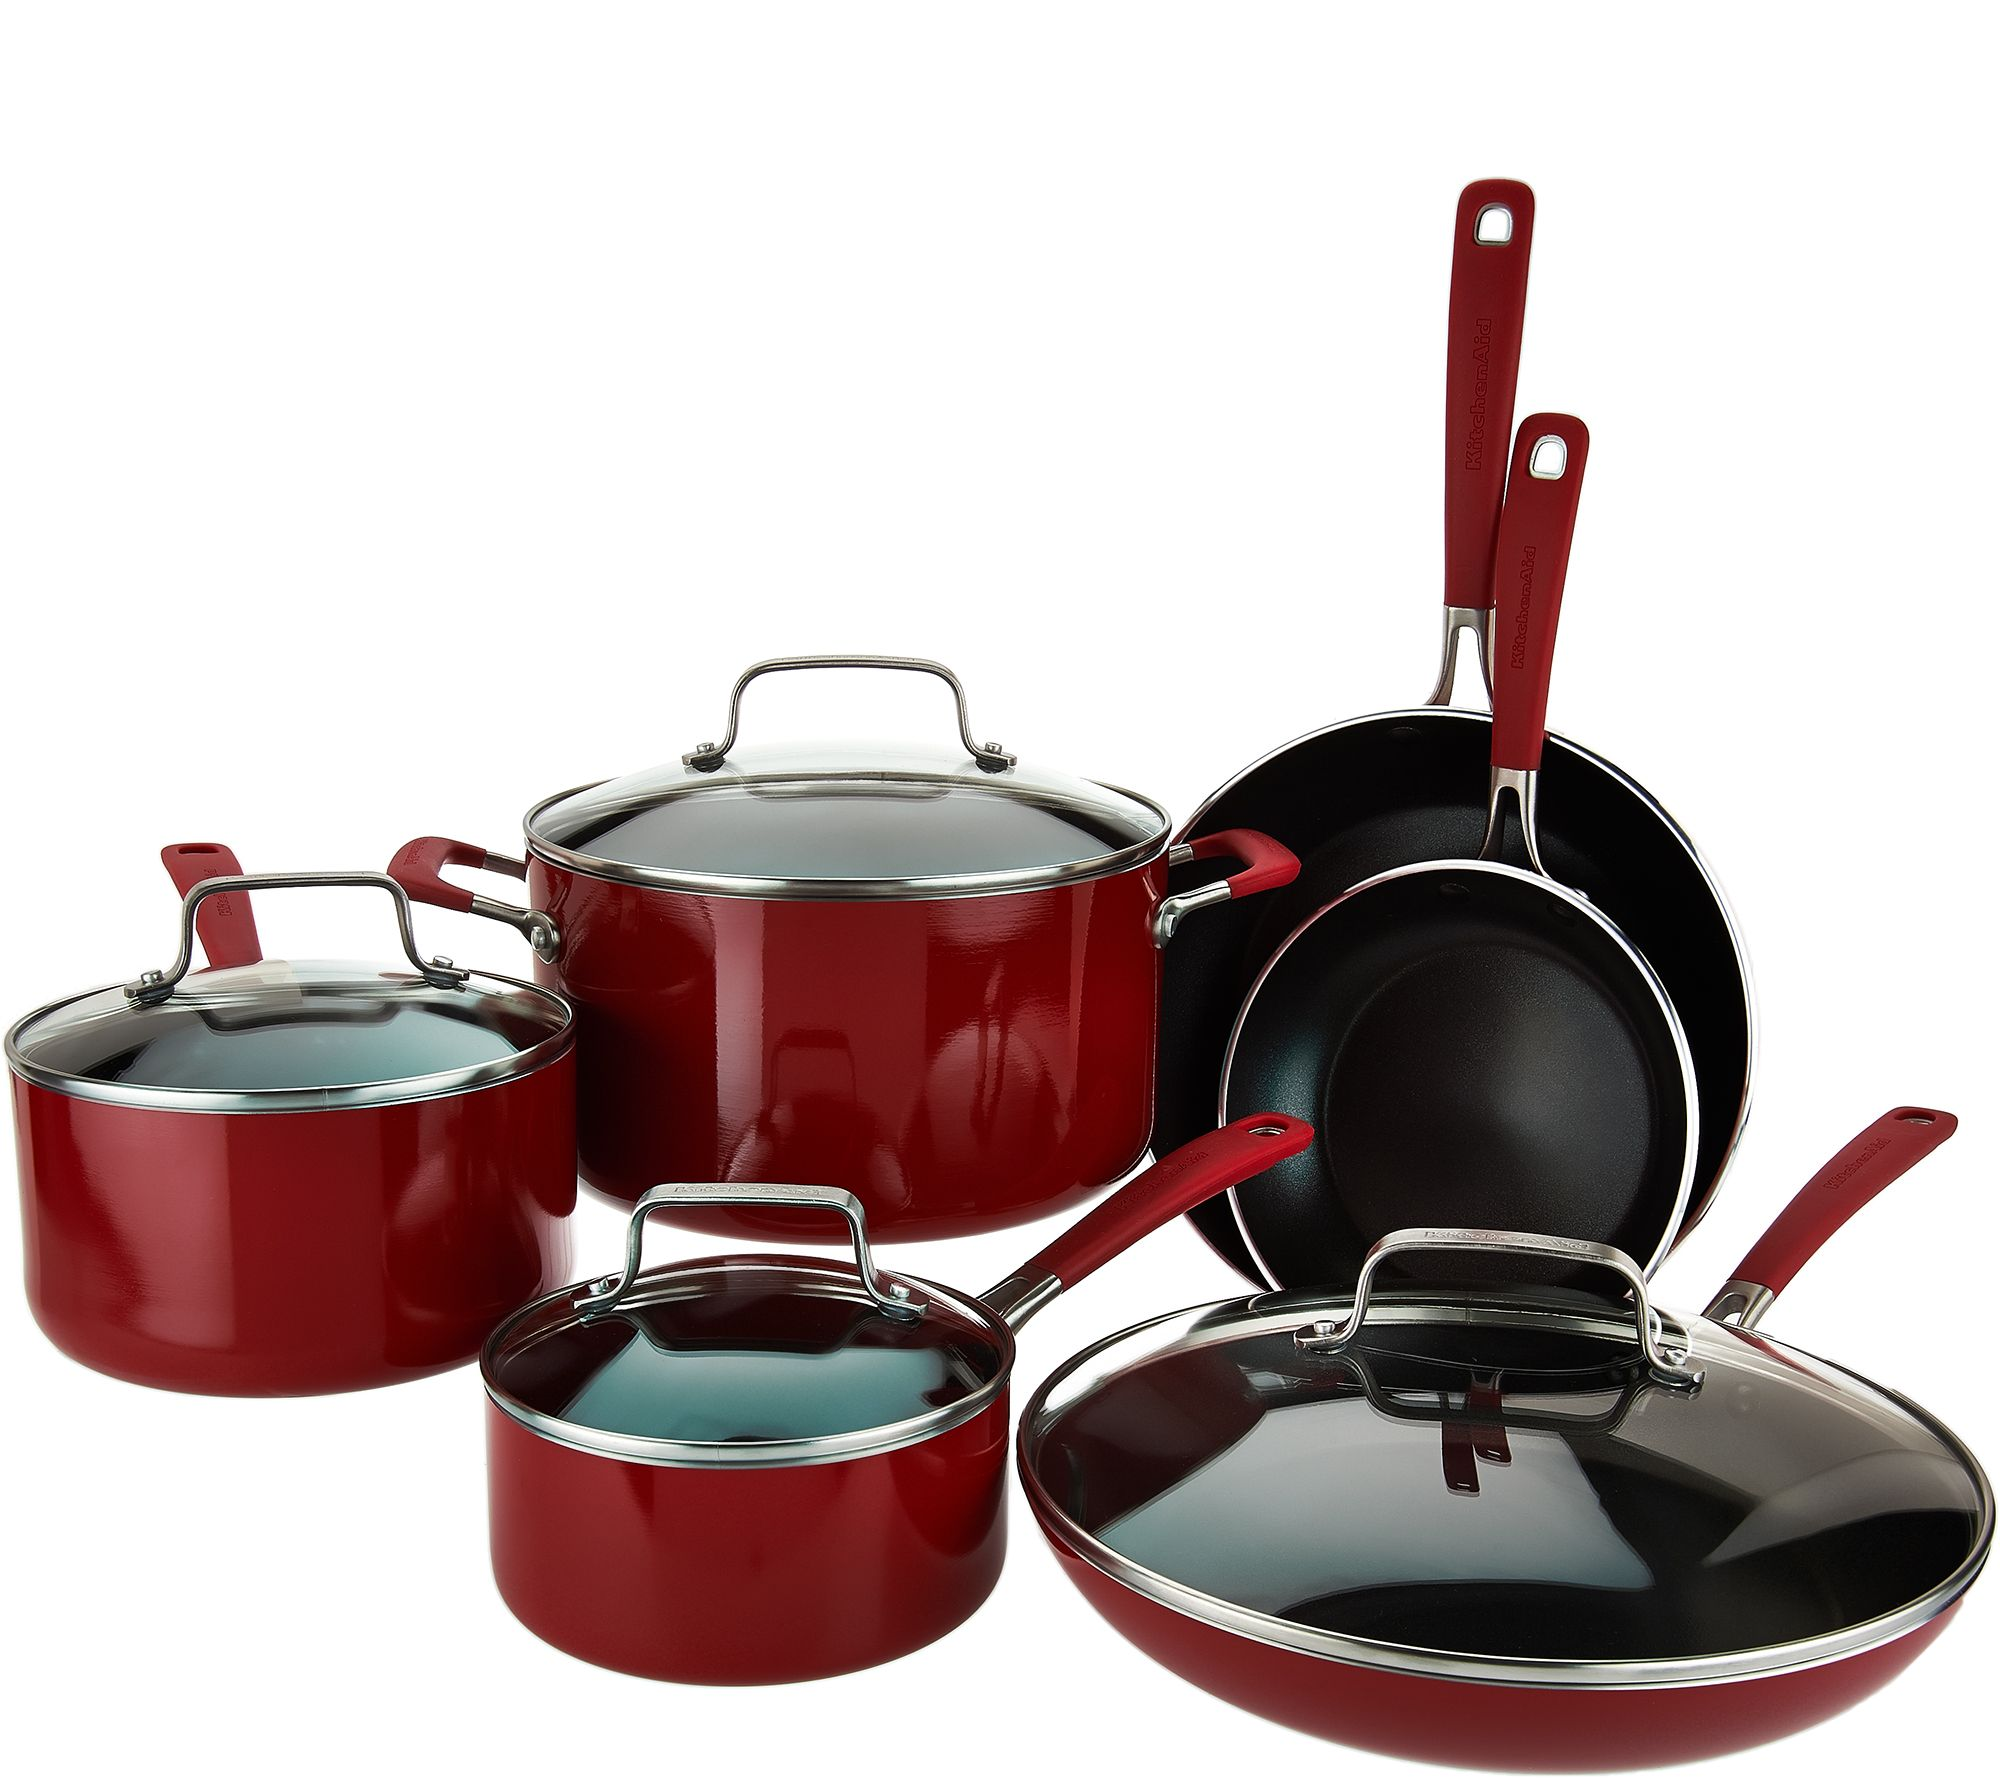 Kitchenaid 10 piece nonstick aluminum cookware set page 1 - Kitchen aid pan set ...